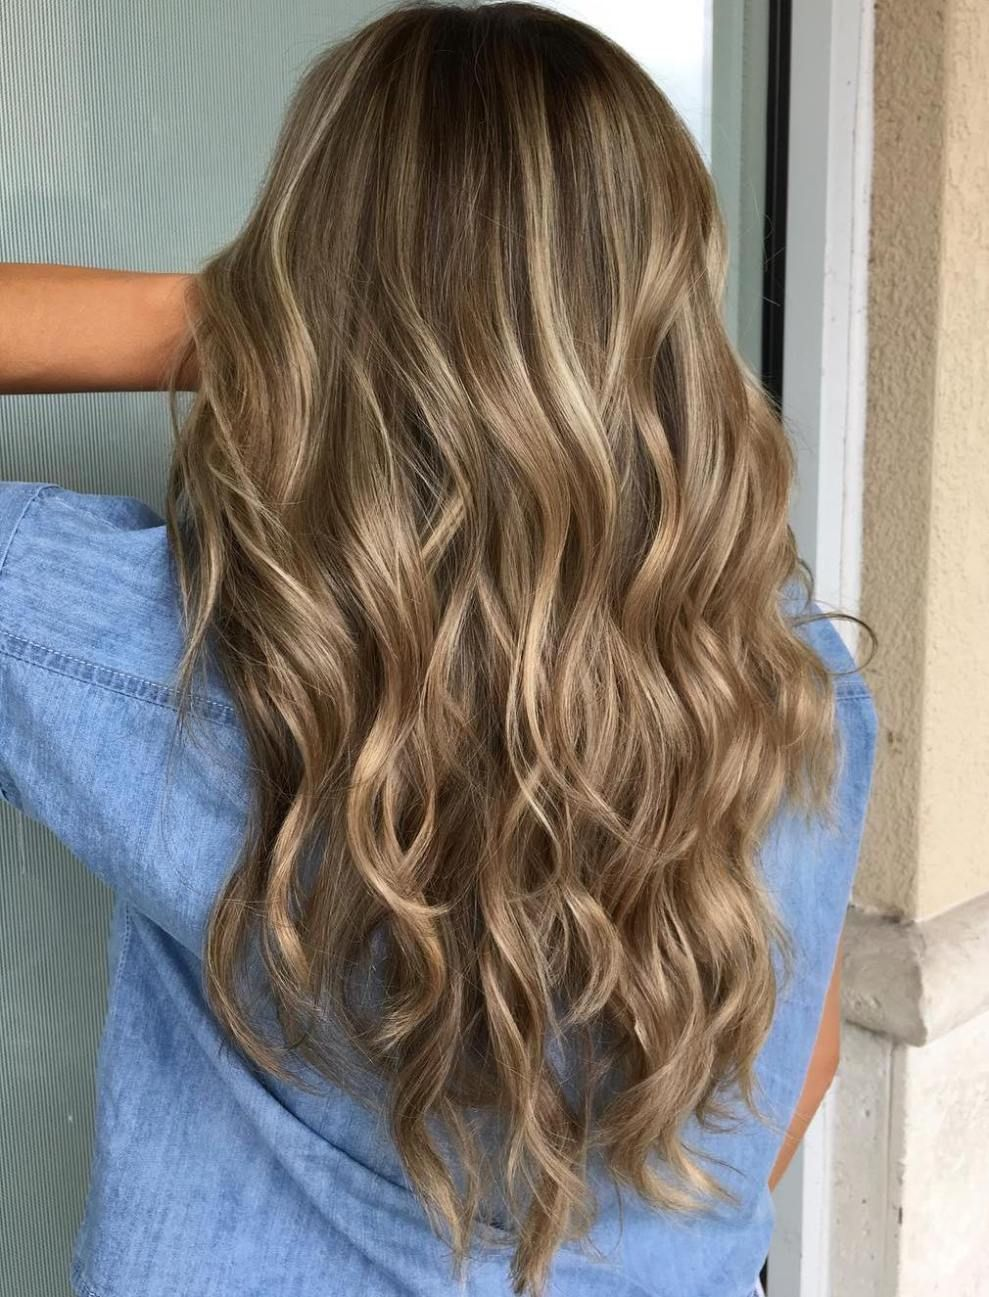 blonde hair color ideas for the current season in hair